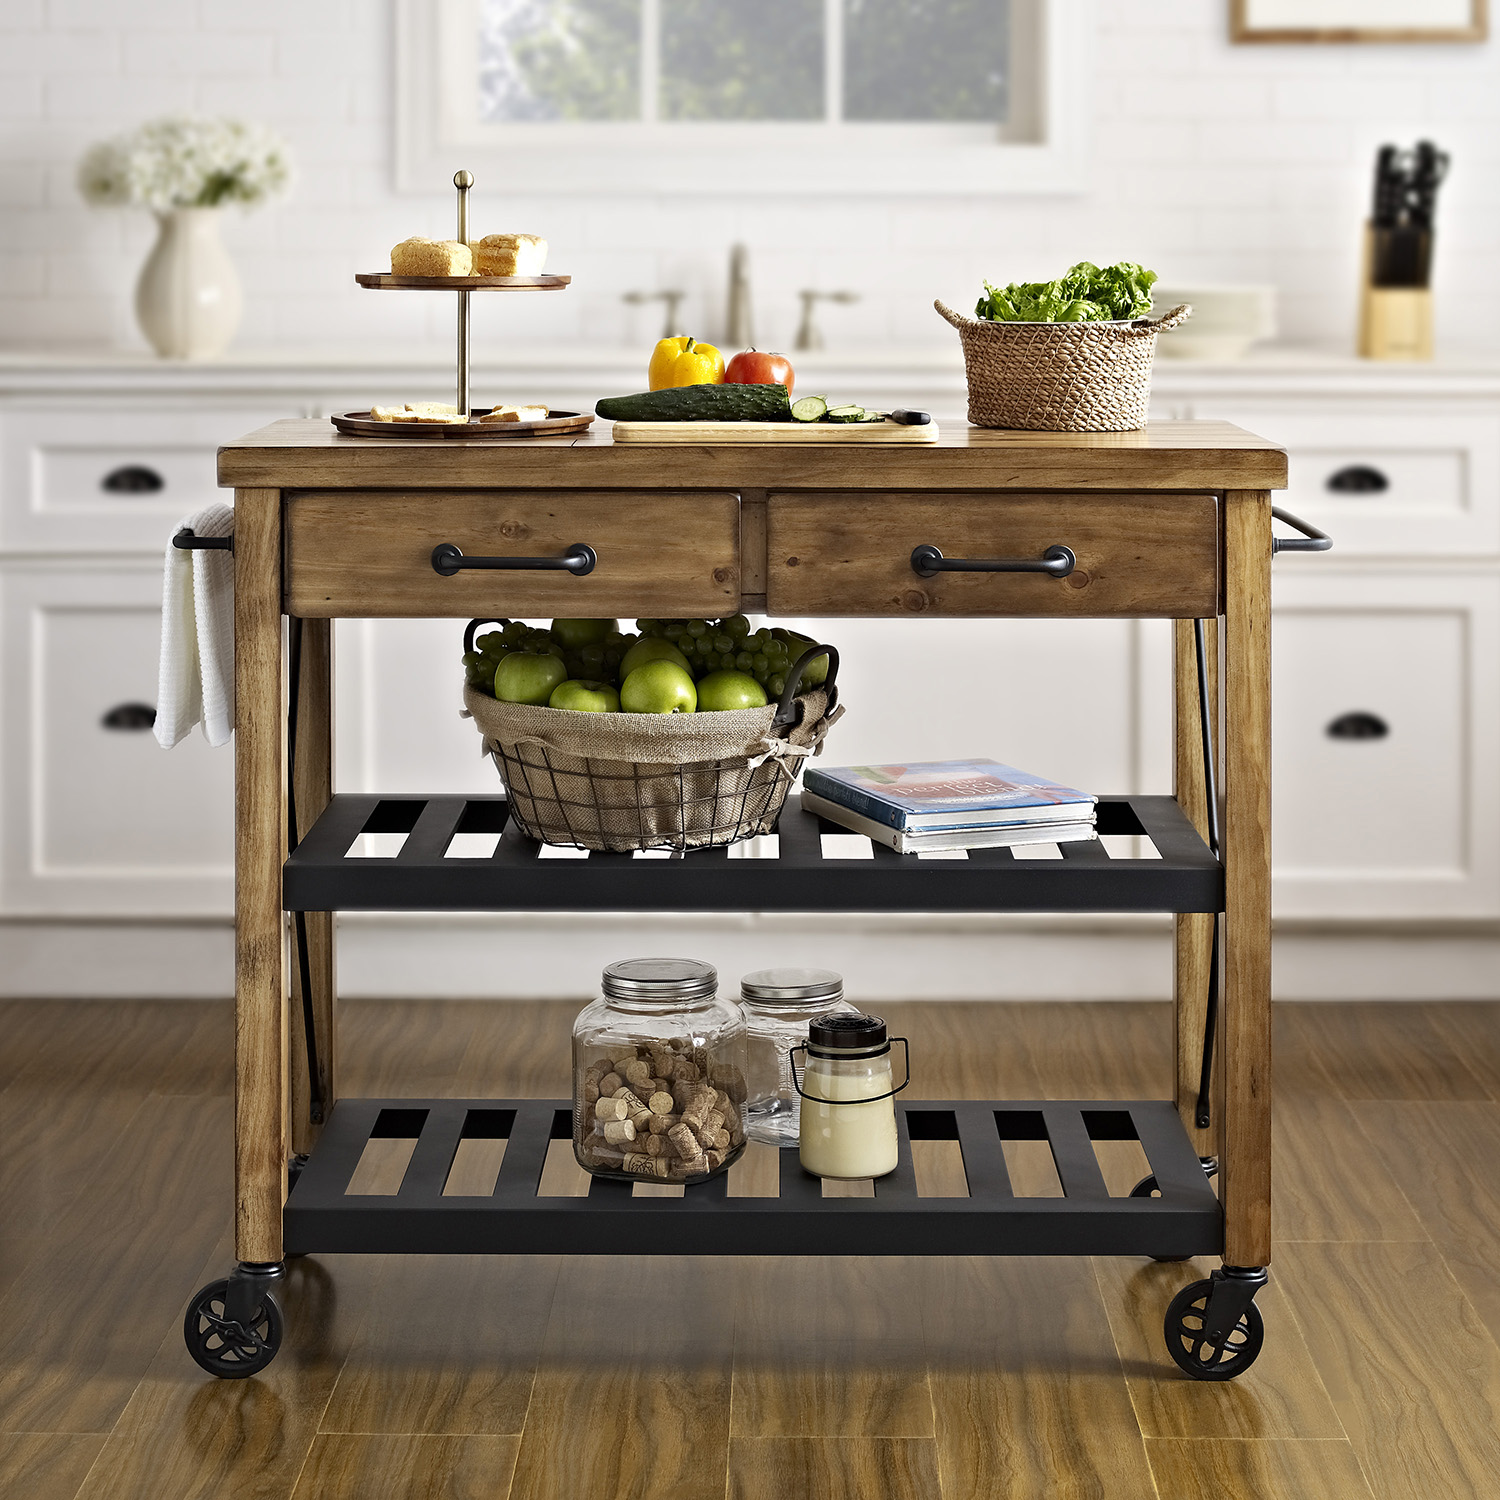 Roots Rack Kitchen Cart Pine: Roots Rack Industrial Kitchen Cart - Natural